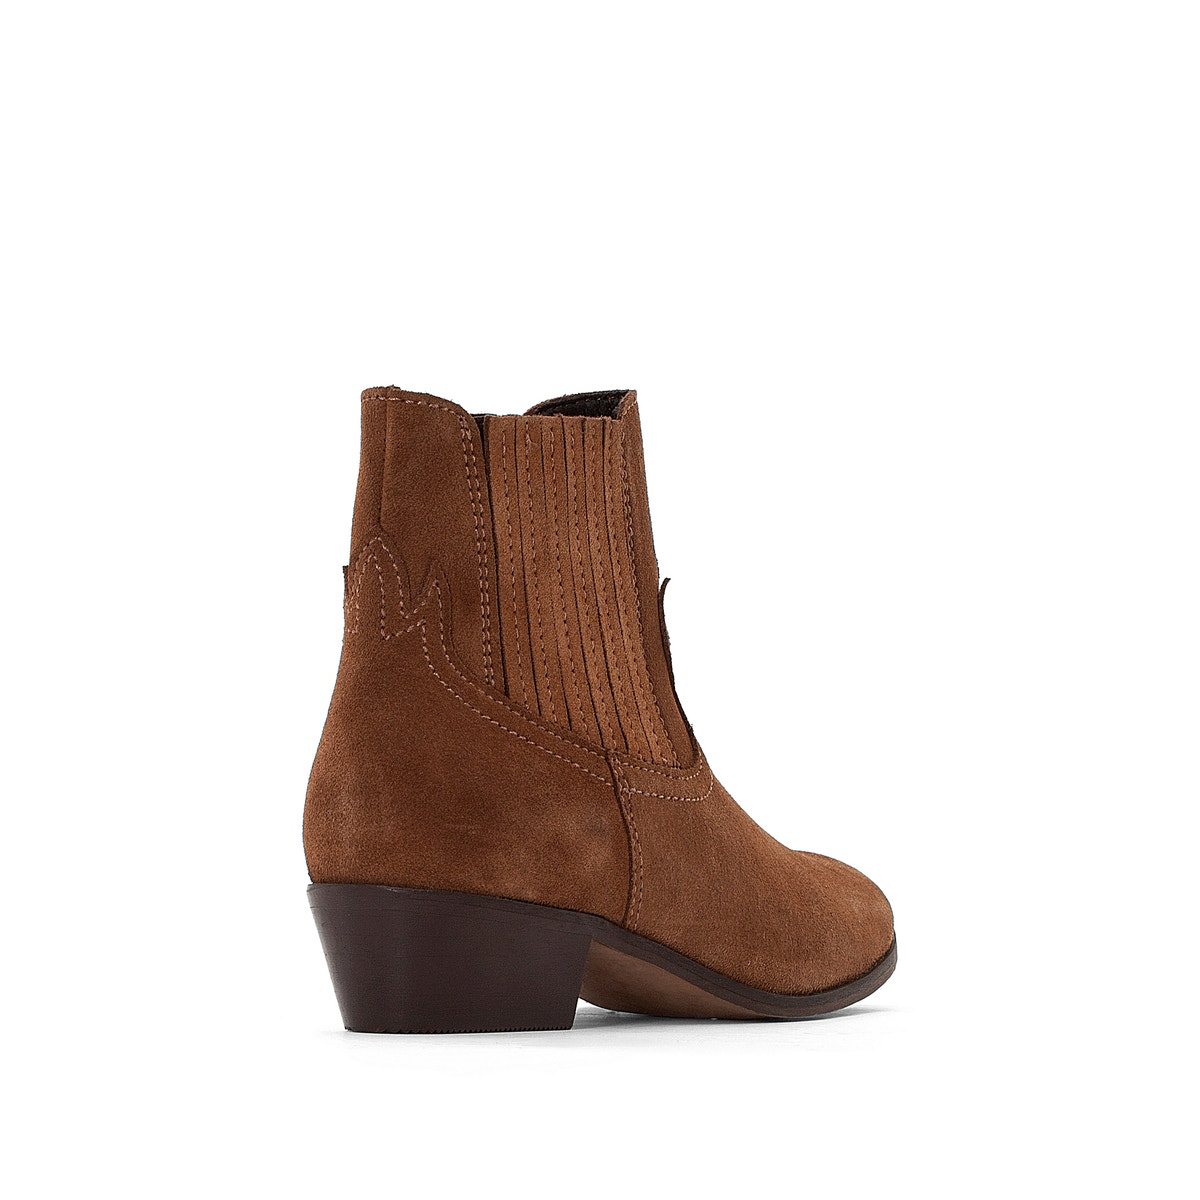 La Redoute Collections Womens Leather Cowboy Boots Boots Boots dc6317